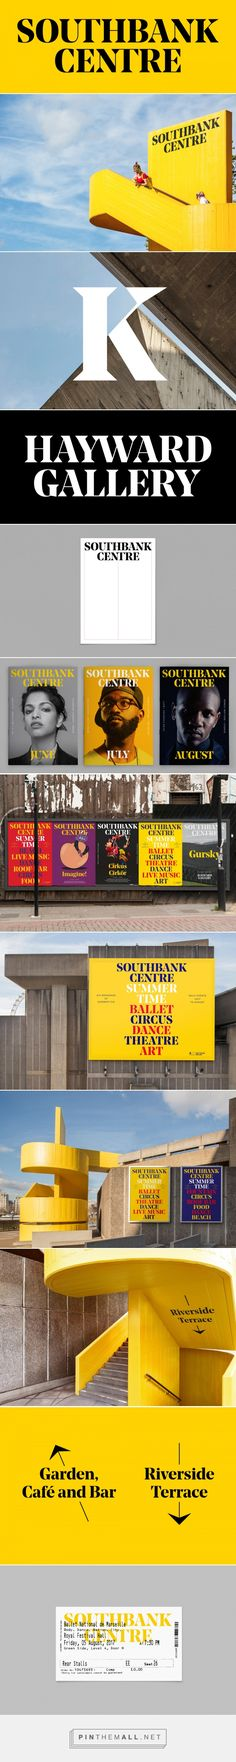 Brand New: New Logo and Identity for Southbank Centre by North - created via https://pinthemall.net